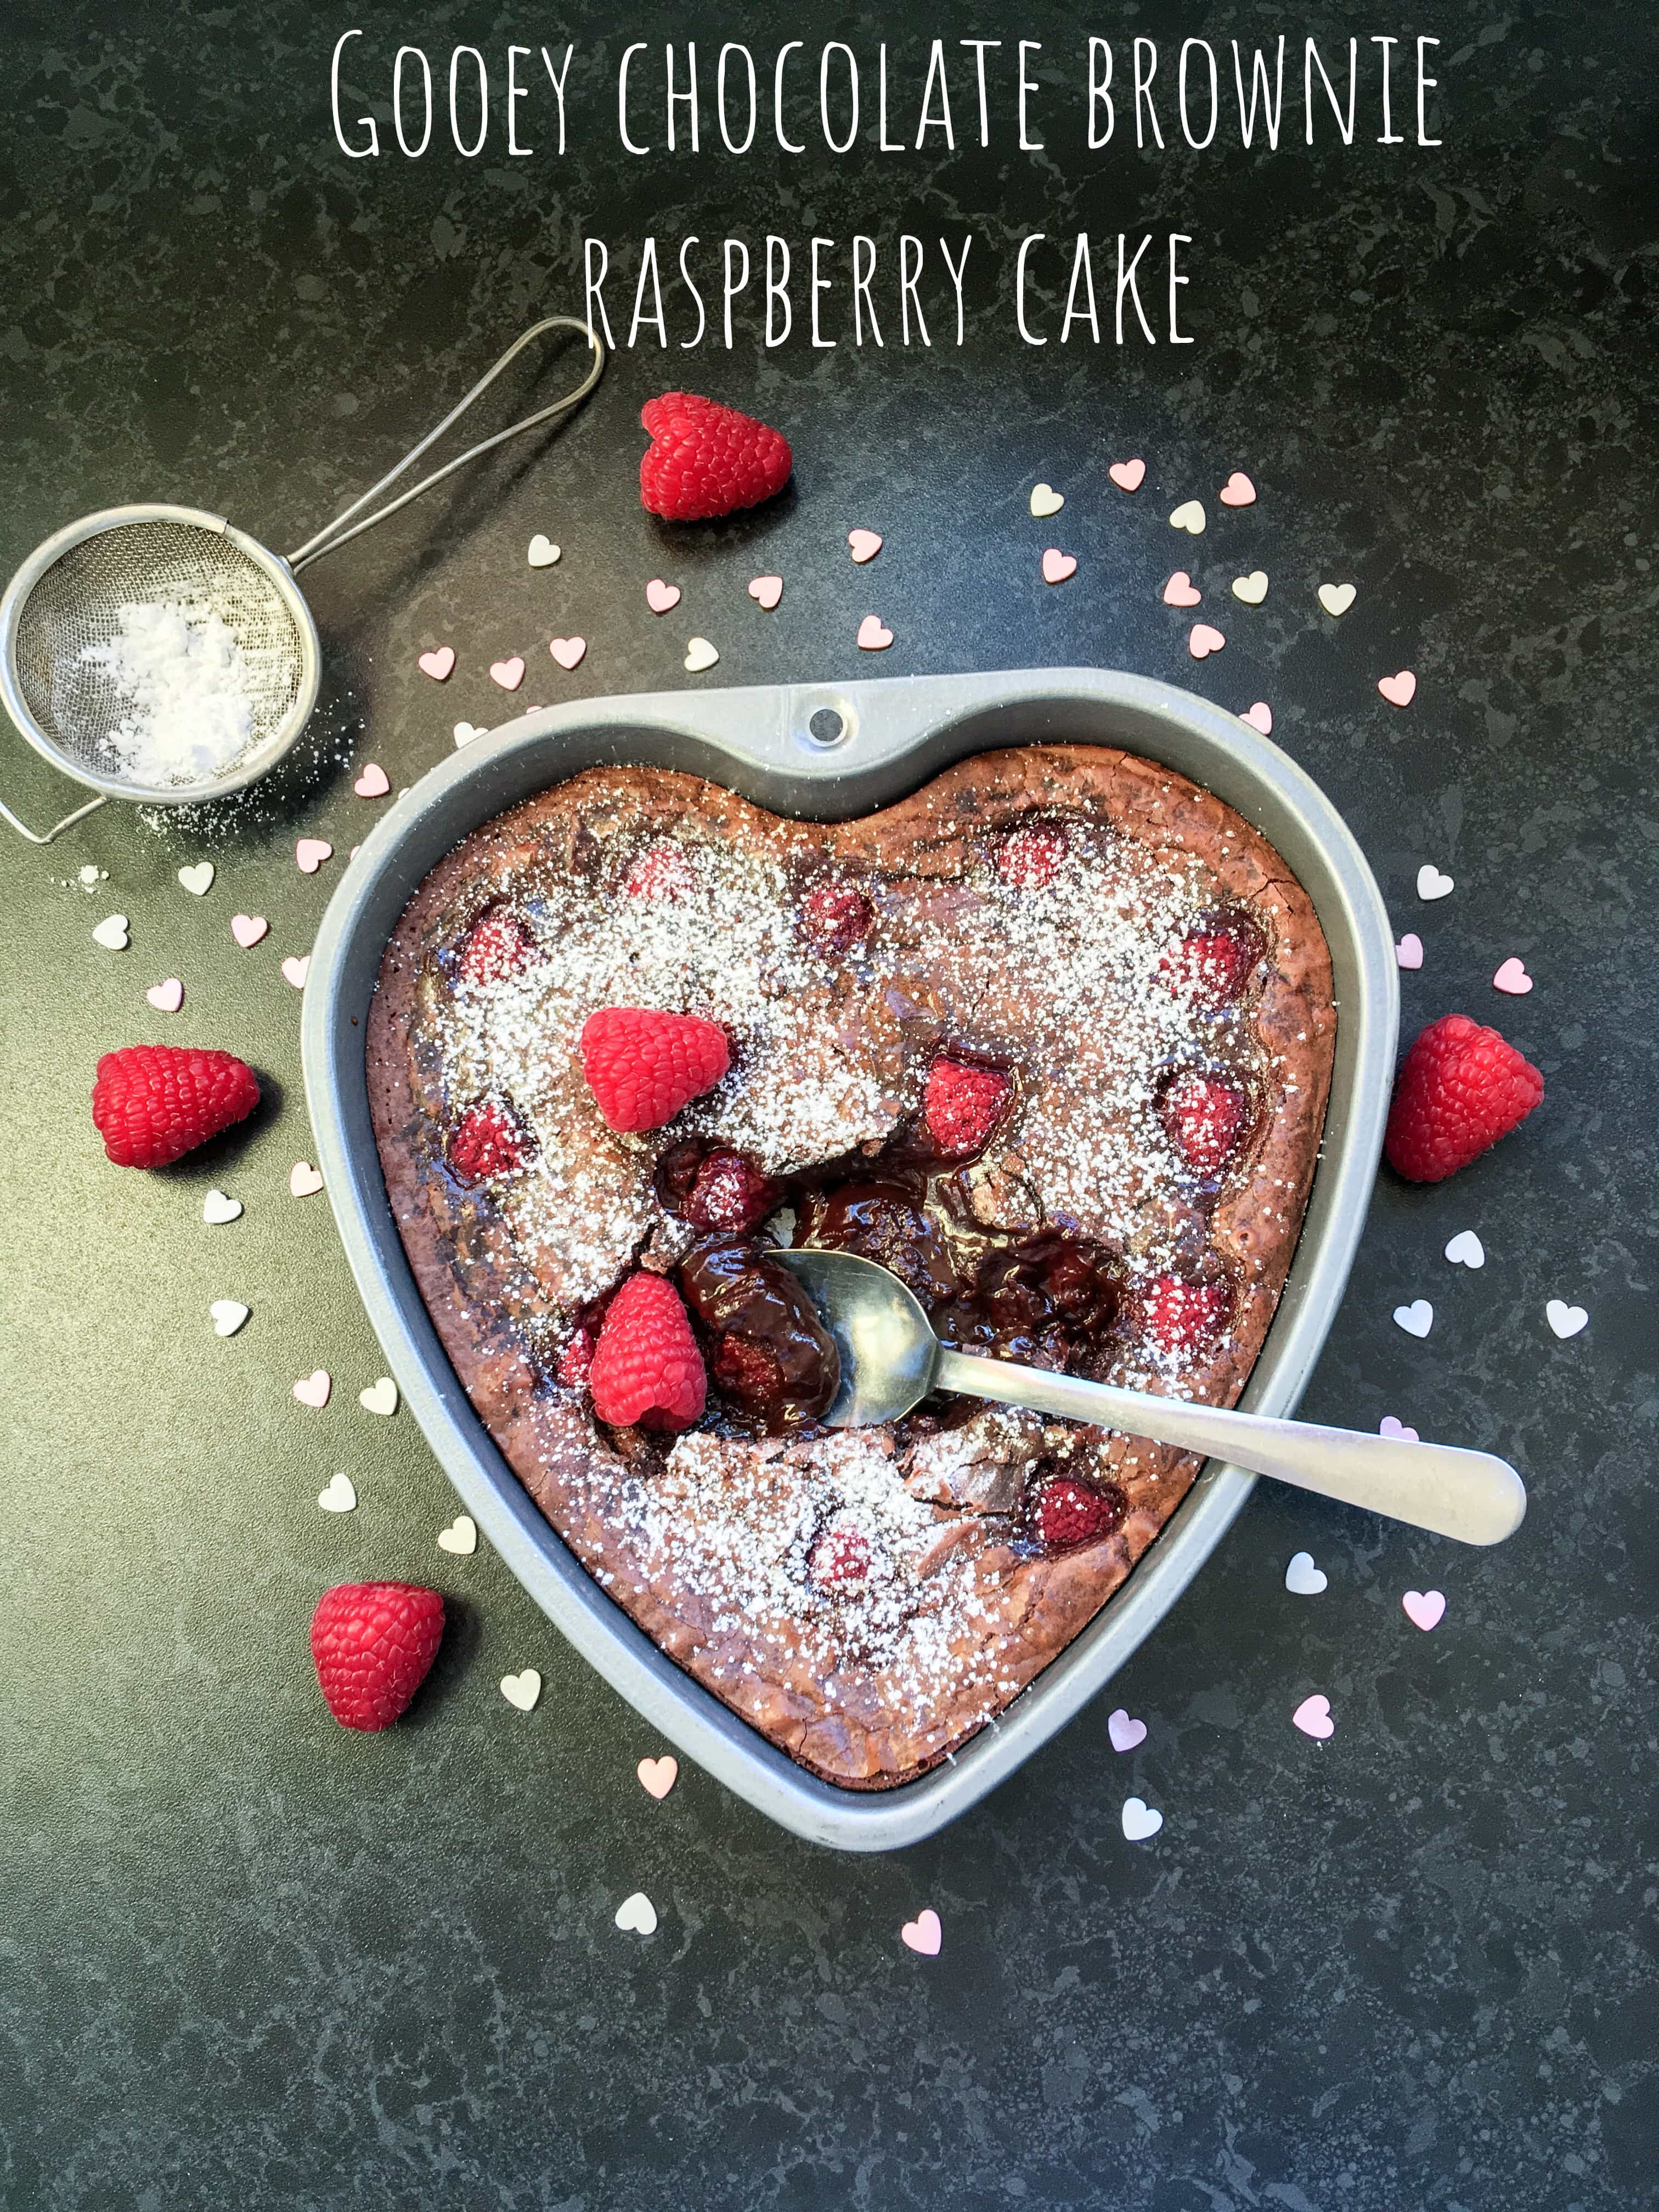 A flat lay photo of a chocolate cake in a heart shaped tin, a spoon digging into the centre of the cake revealing the molten chocolate middle and fresh raspberries.